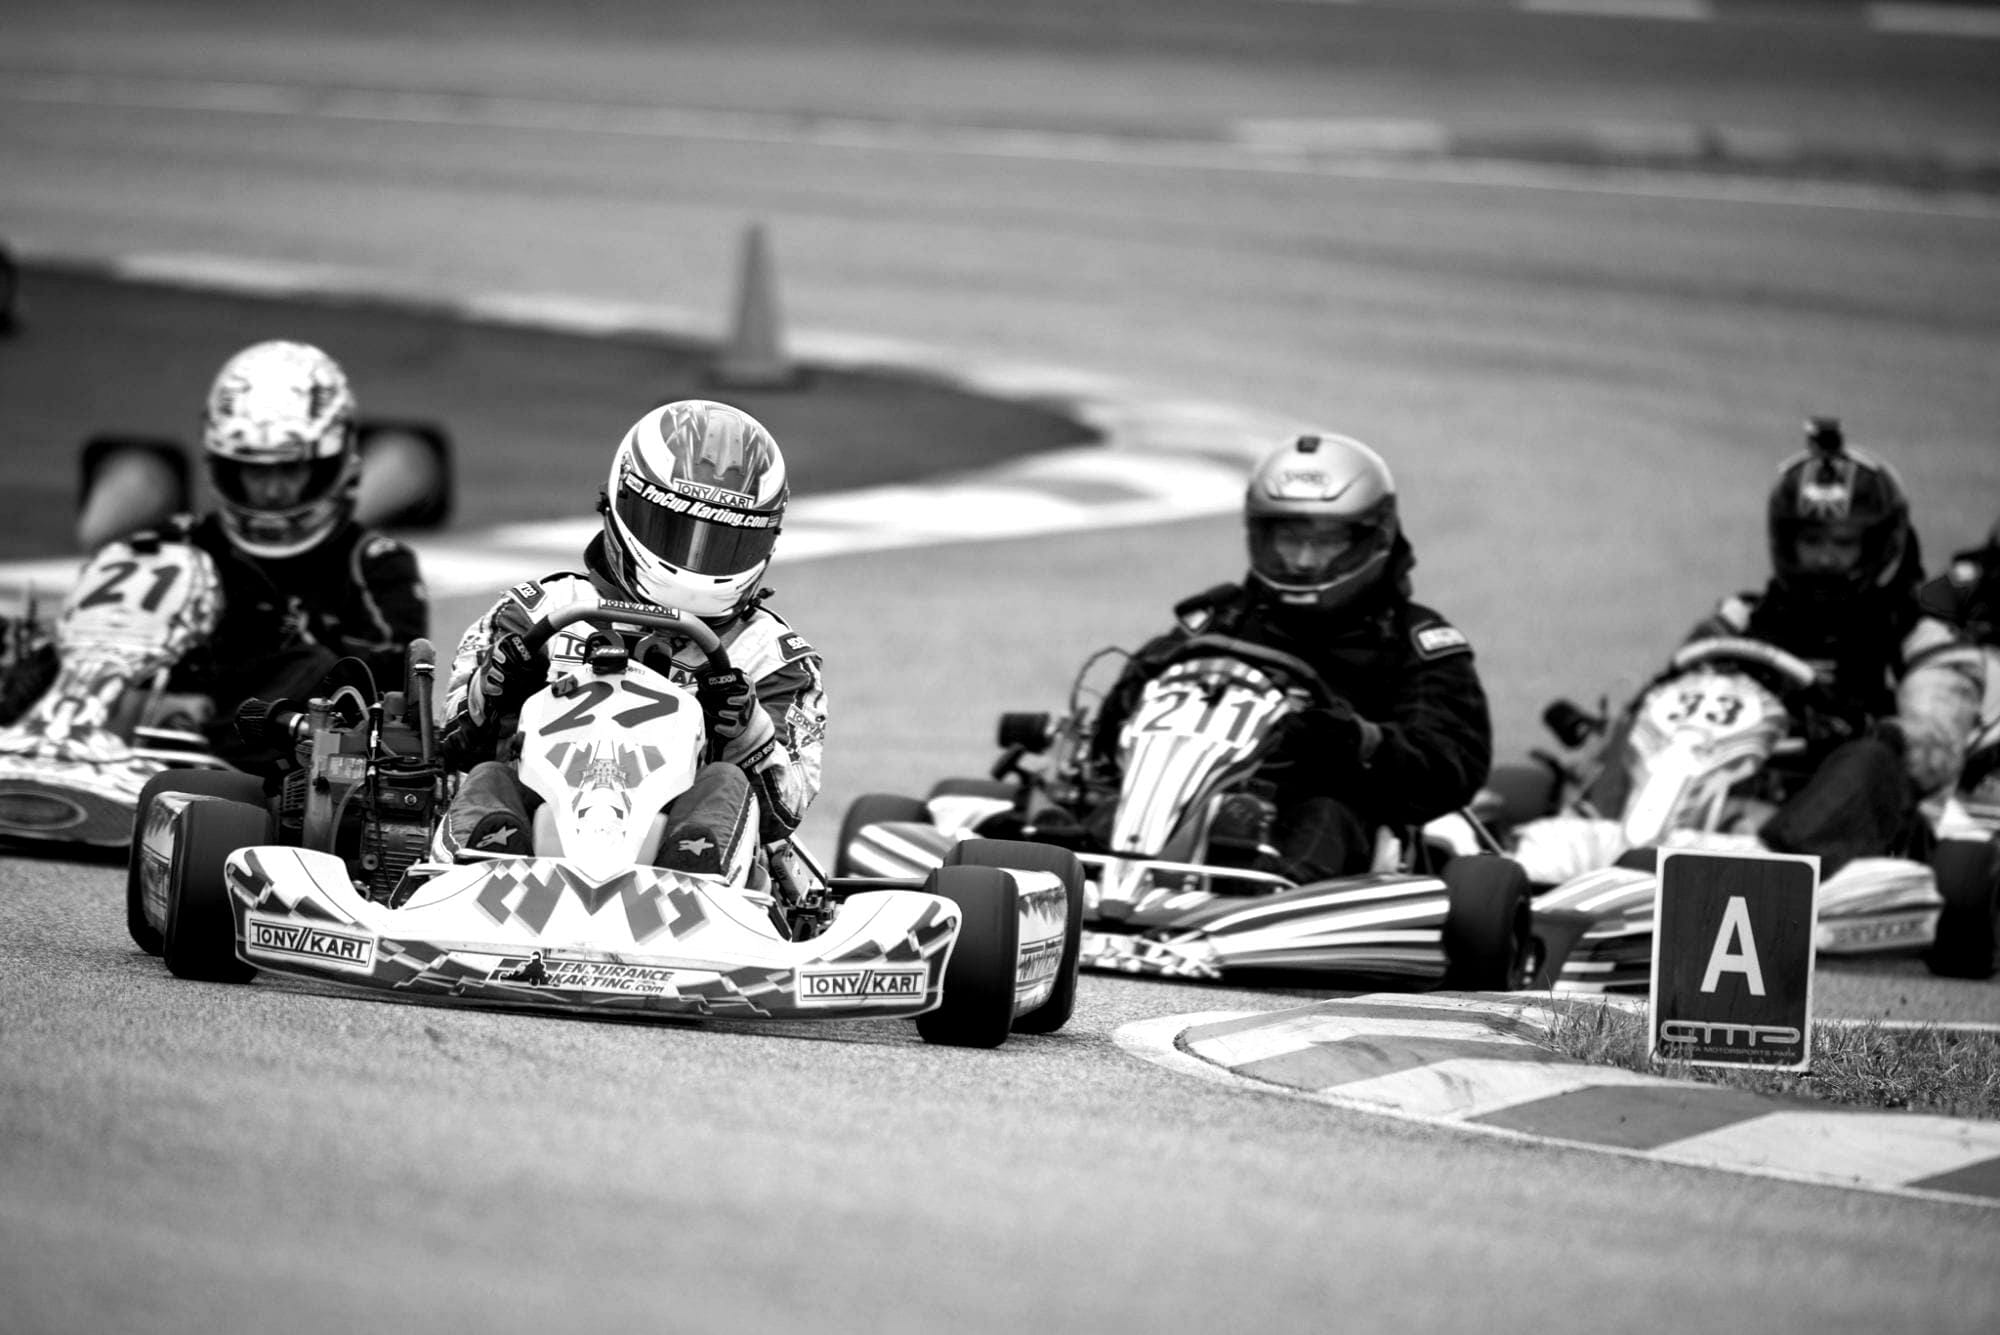 karting facebook for march 19 race 1 blackwhite 1 - Race Series